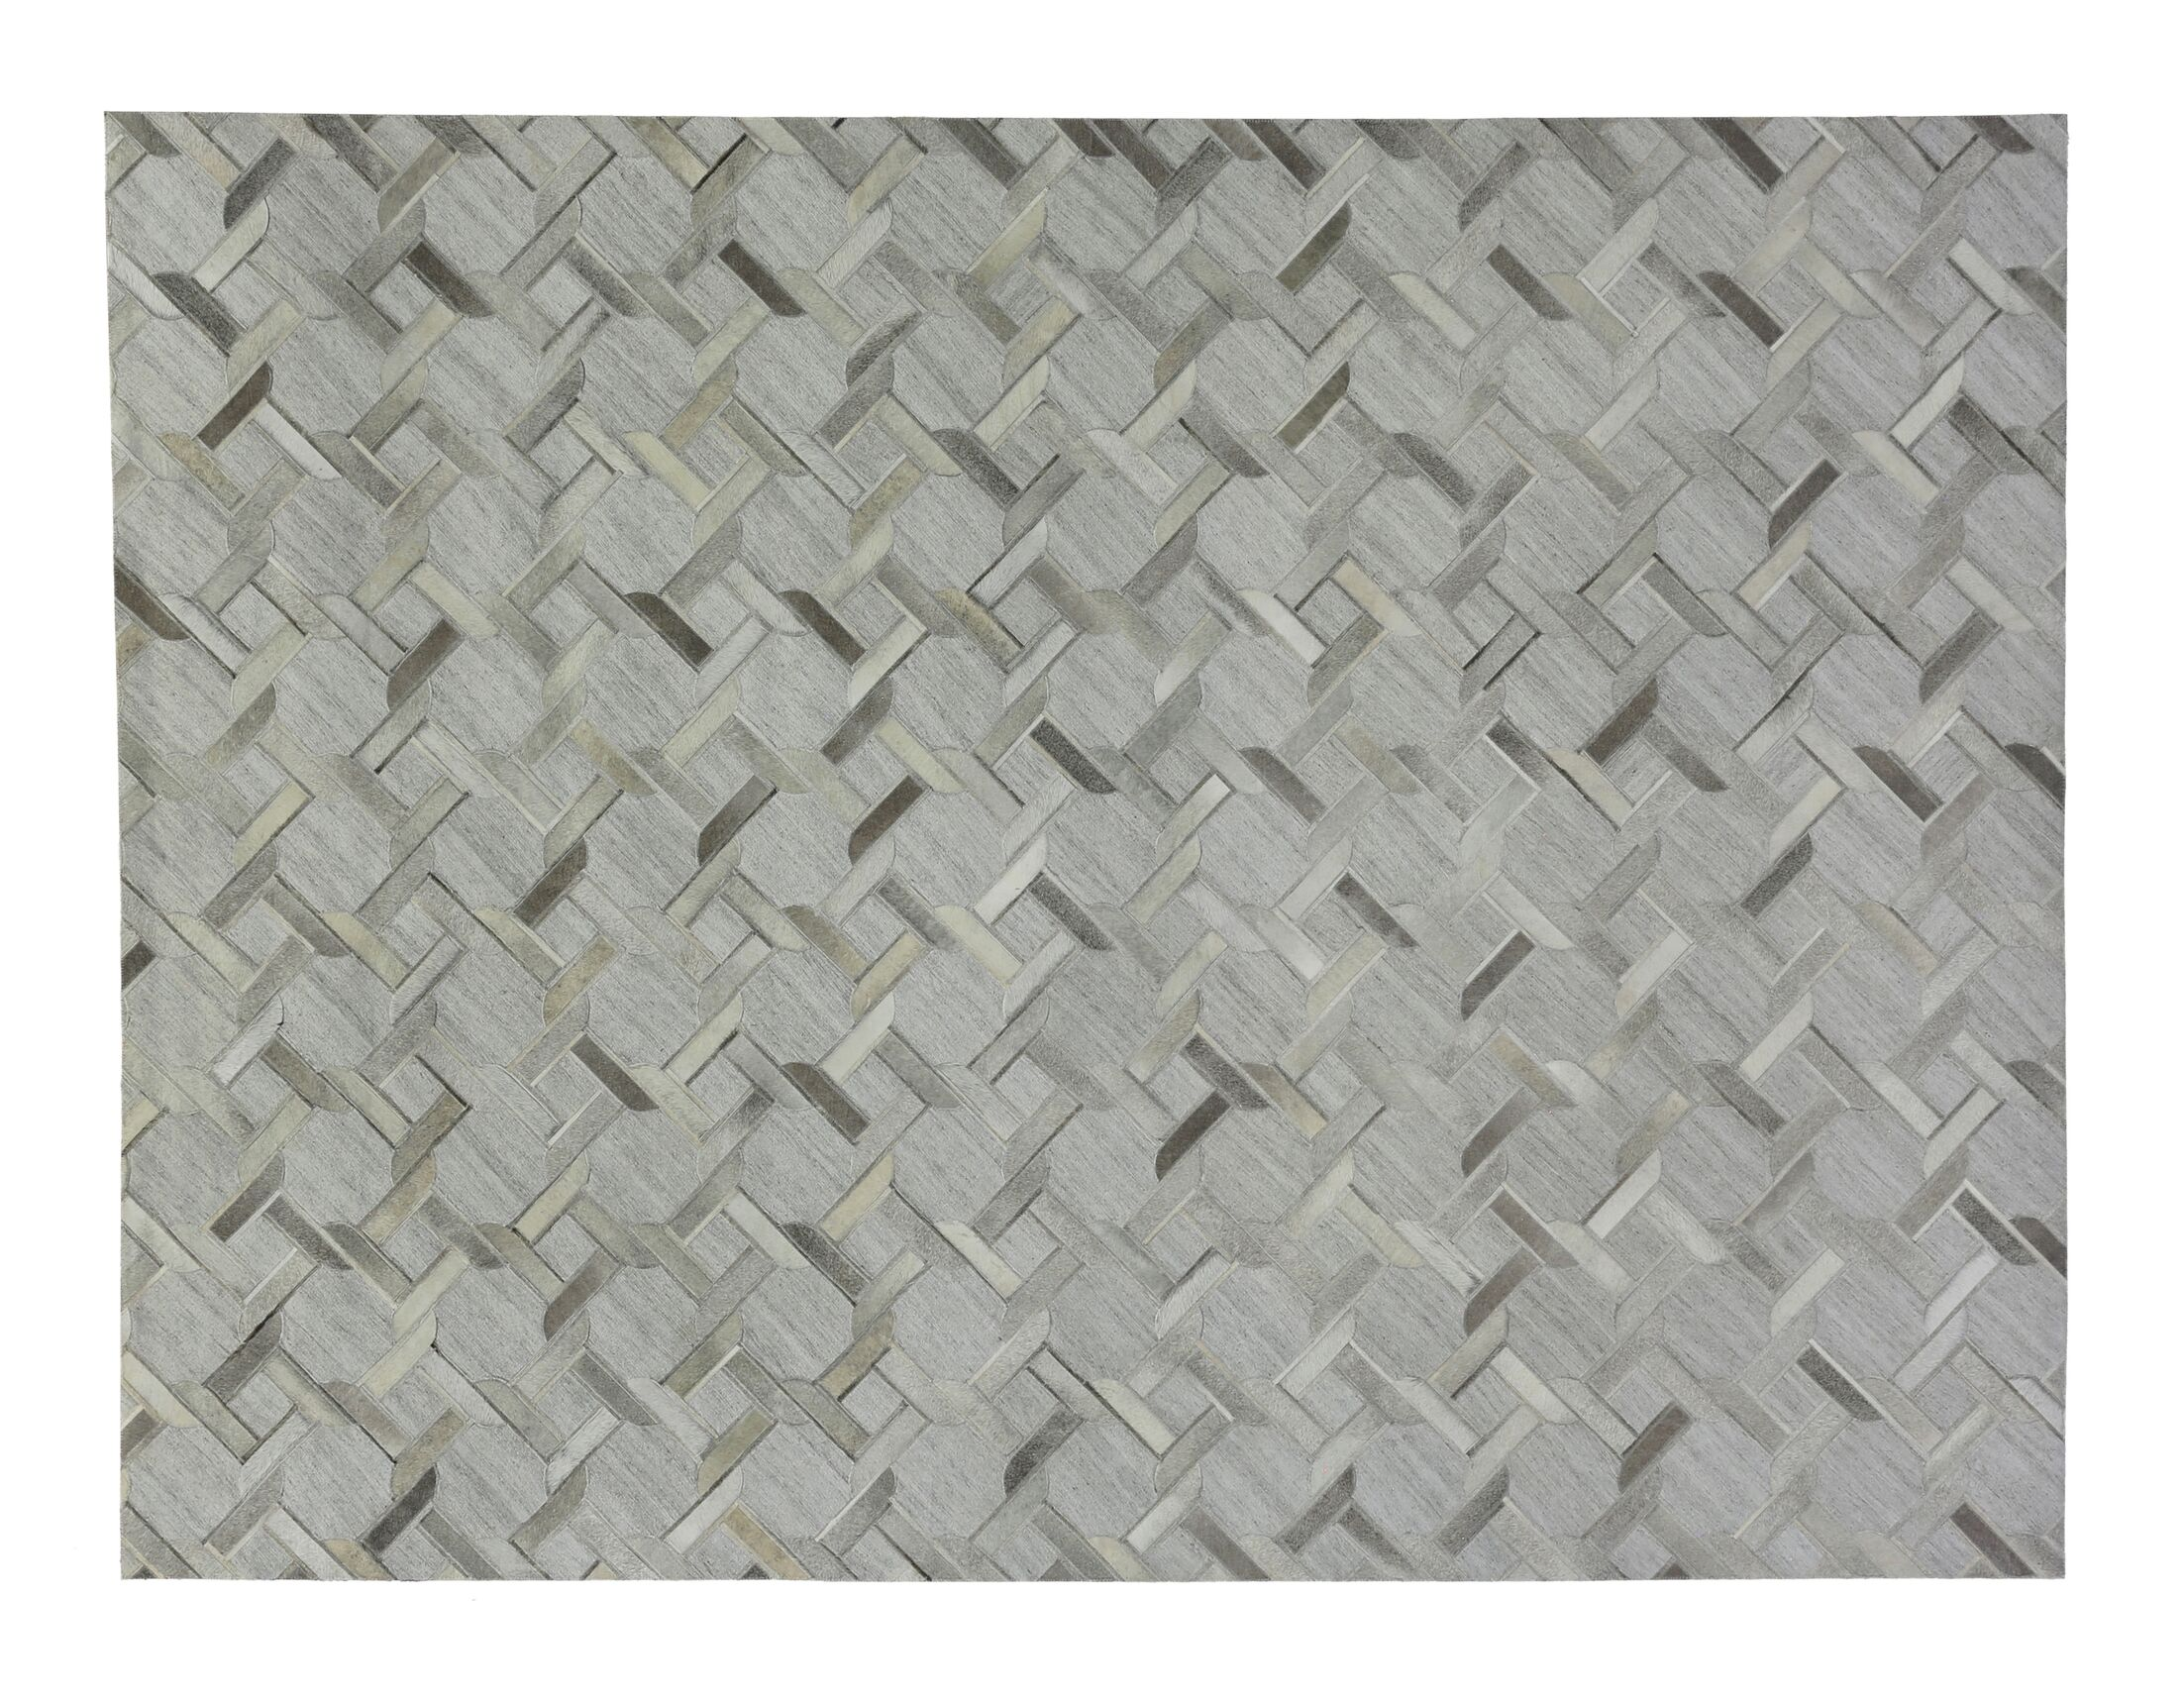 One-of-a-Kind Berlin Hand-Woven Silver/Gray Area Rug Rug Size: Rectangle 8' x 11'